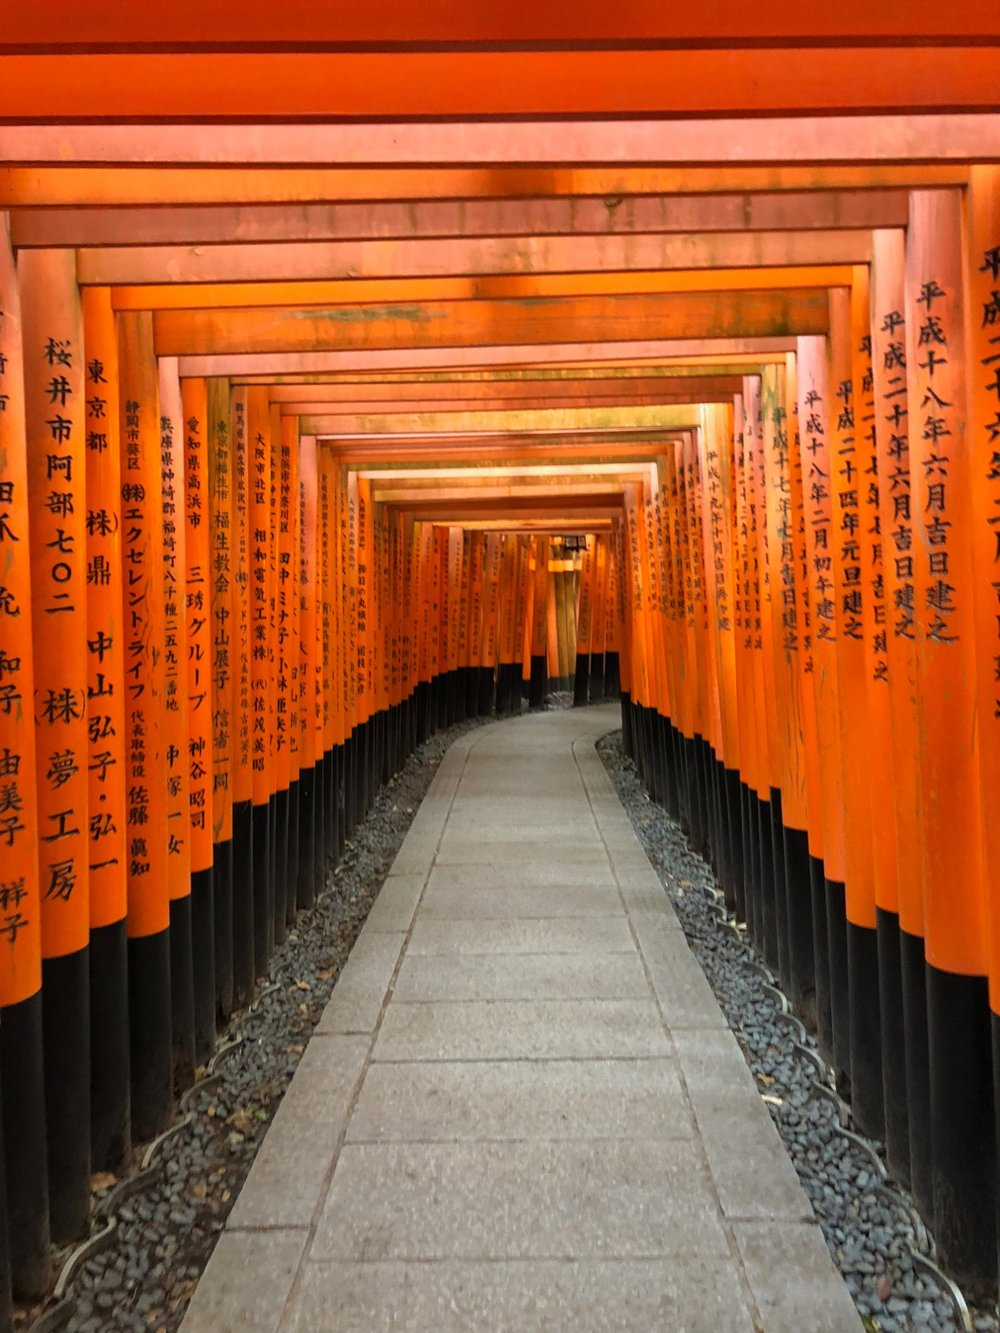 The Torii gates at the Fushimi Inari-Taisha shrine that have Japanese writing on them indicate the date or completion of original wish to Inari the Shinto god of rice and business.